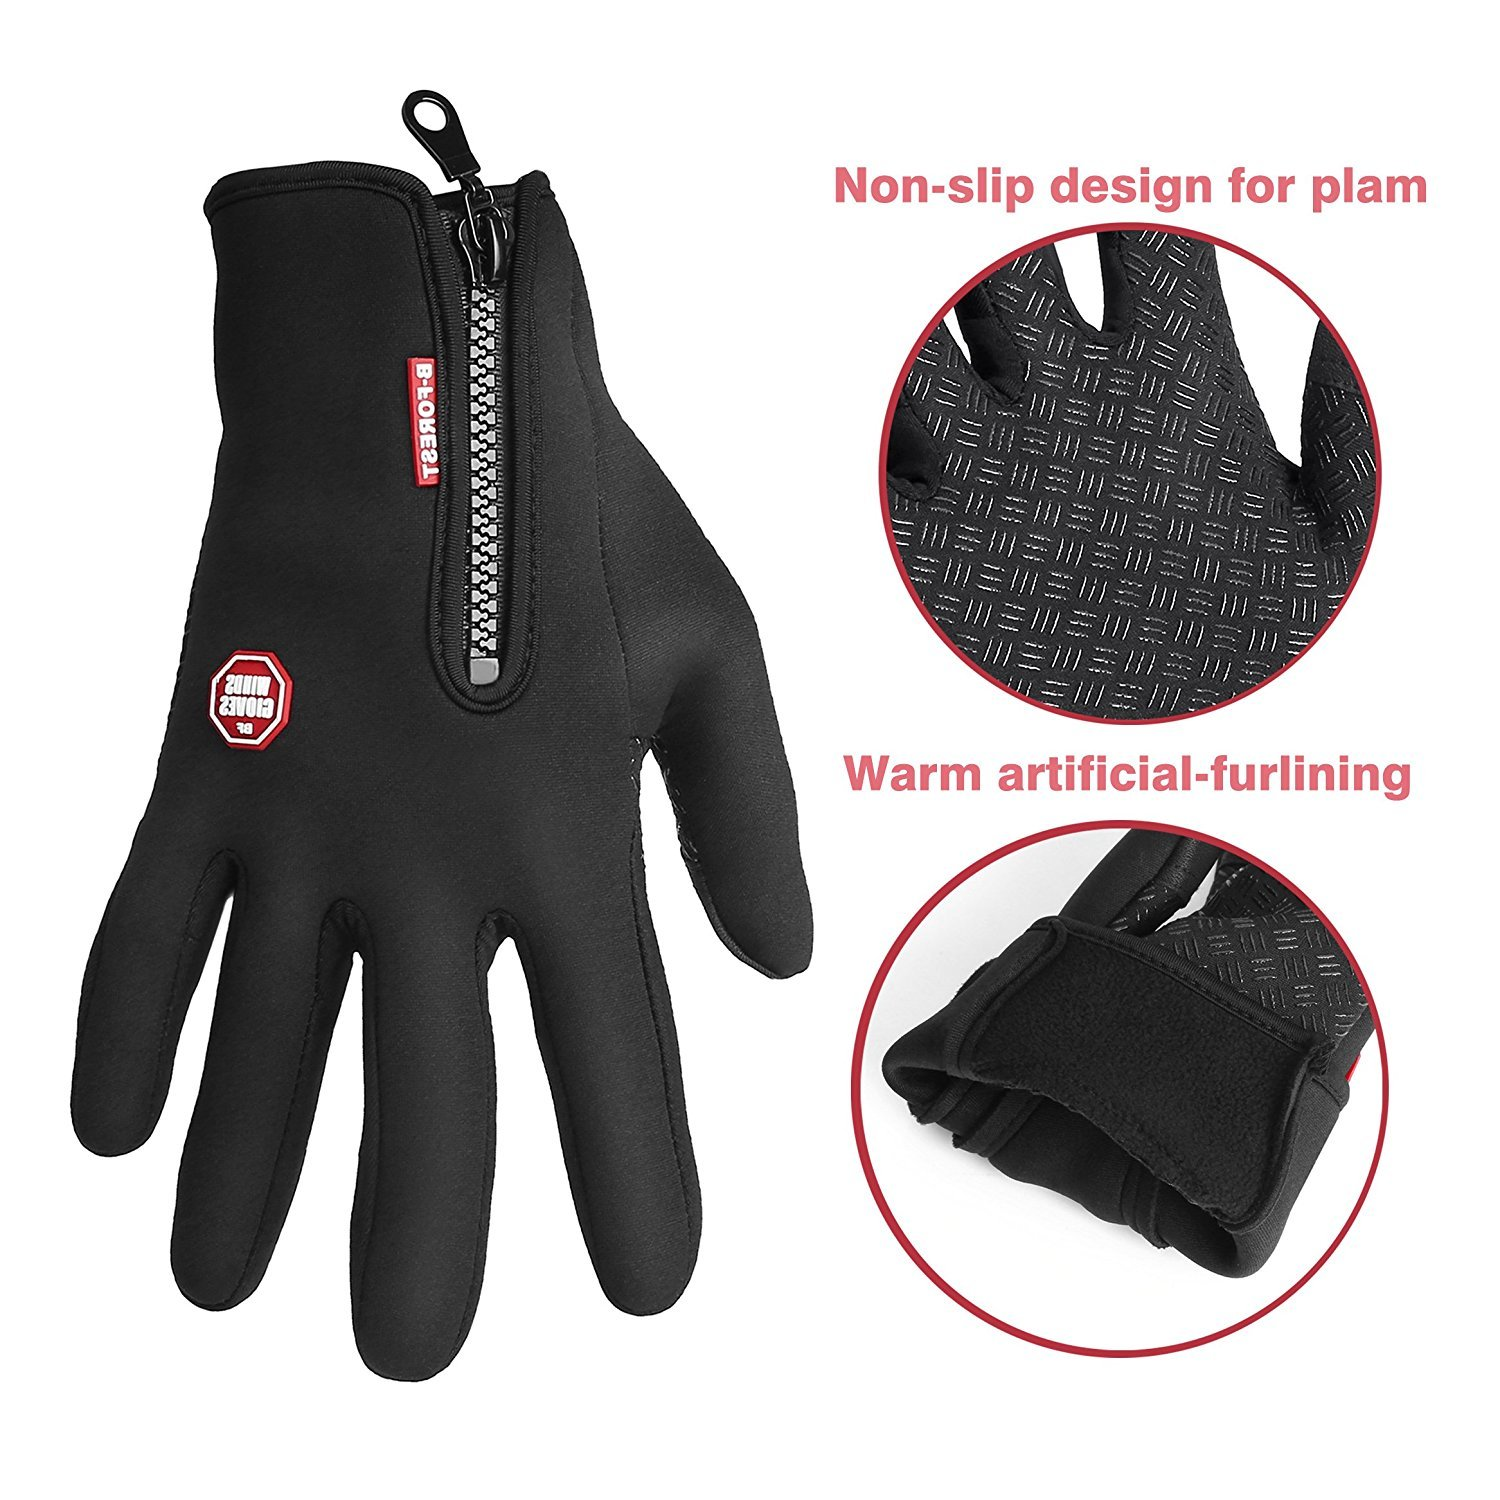 Acelec Waterproof Touch-screen Gloves,with Full-finger Design,for Outdoor Sports Climbing Dress Driving Cycling Motorcycle Camping etc